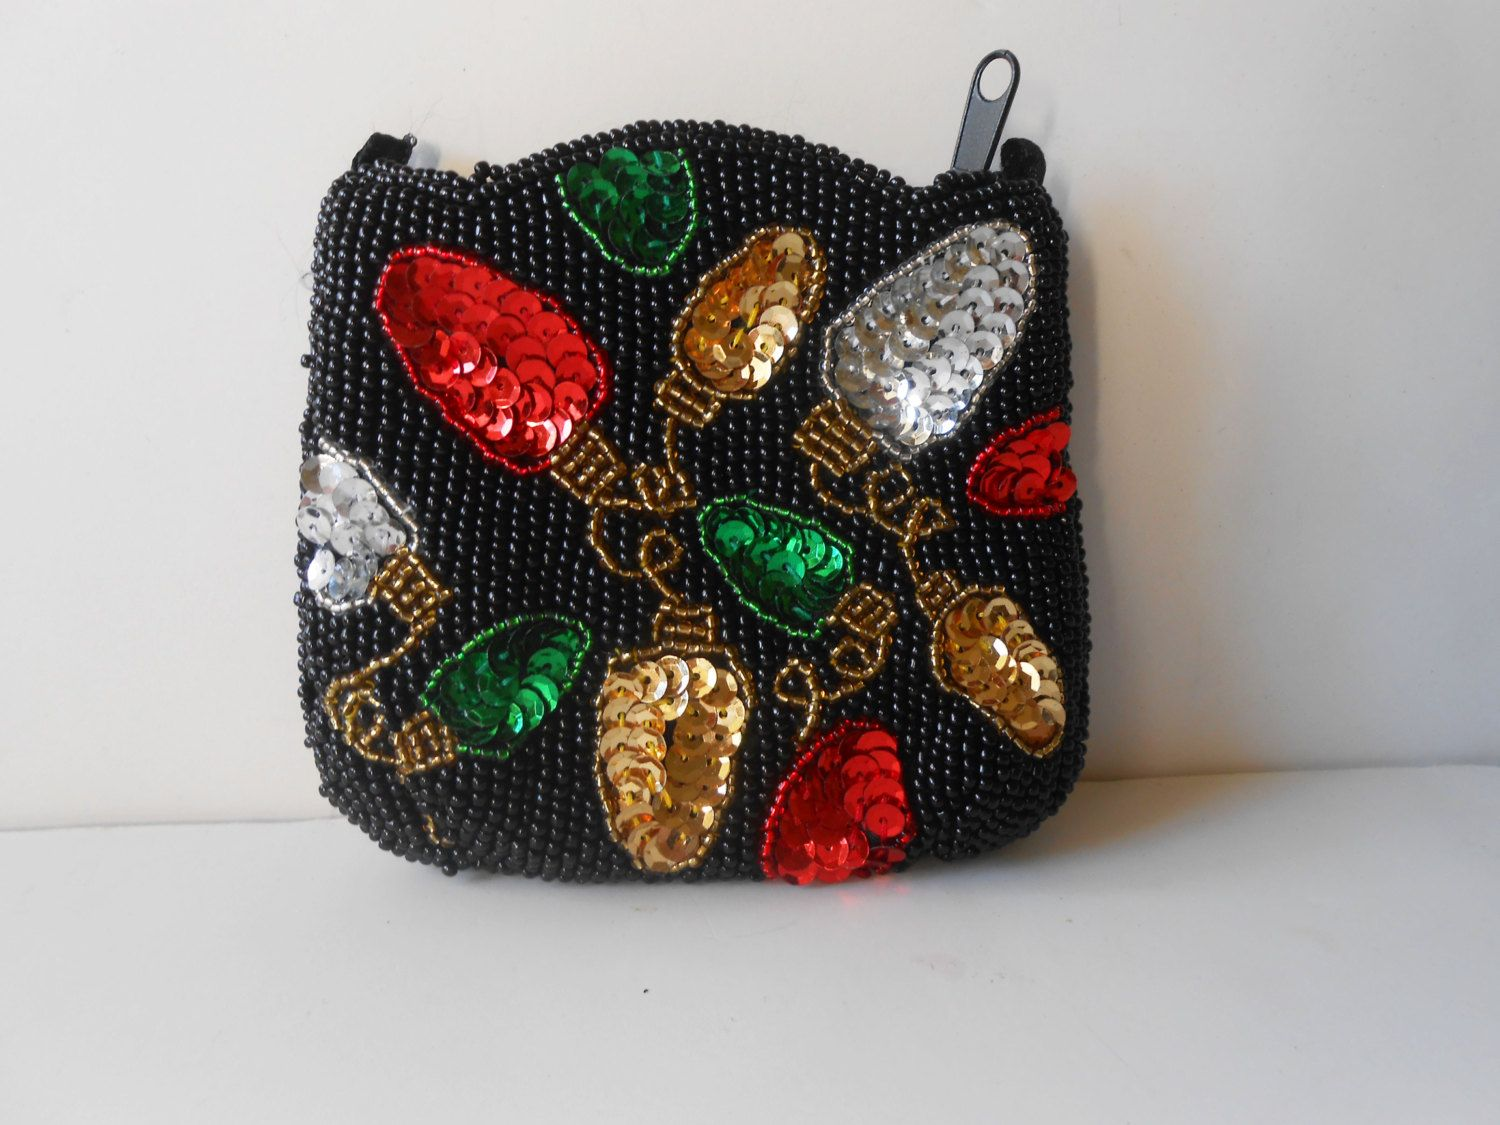 Beaded Bag Vintage Change Purse Glam by LittleBitsofGlamour